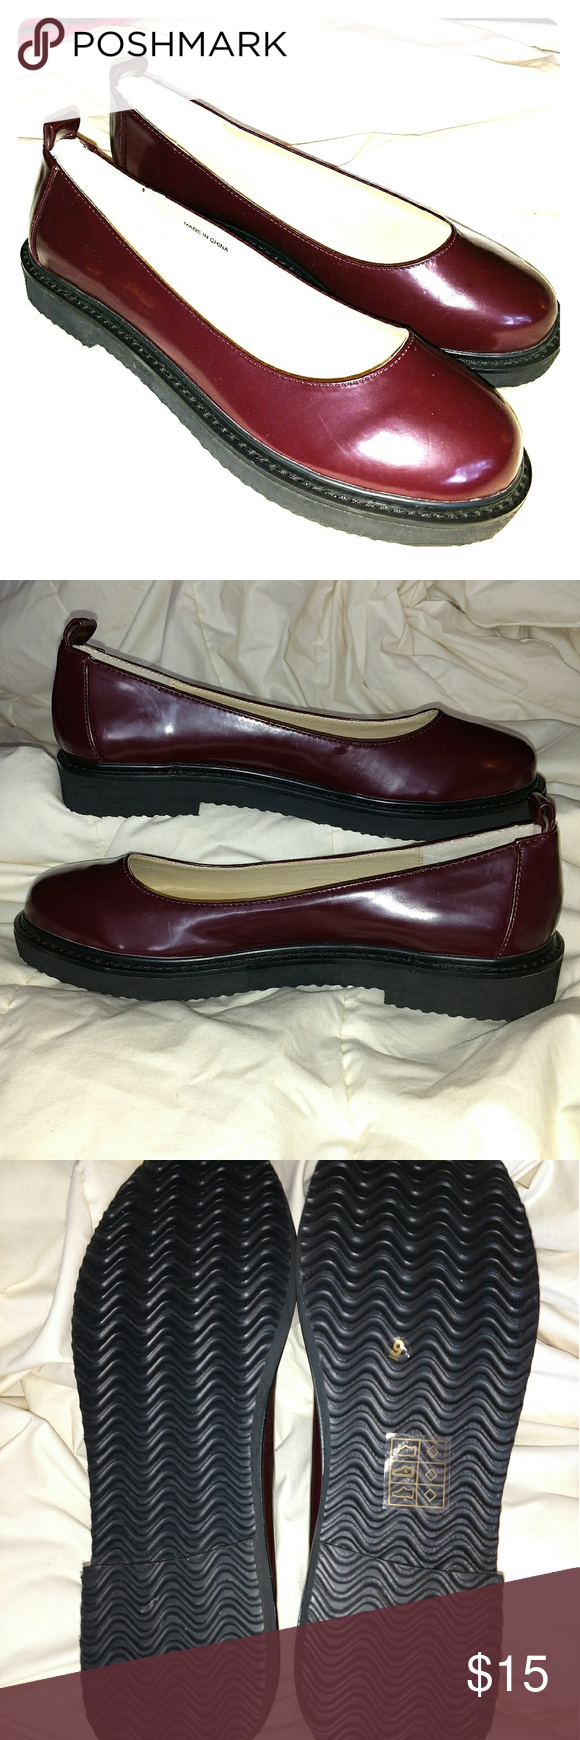 9a0ef238563 Cooperative (UO Brand) flat slipons •Faux leather deep burgundy patent flats  •One-inch black rubber sole •Very comfortable springy insoles • Size 9B ...